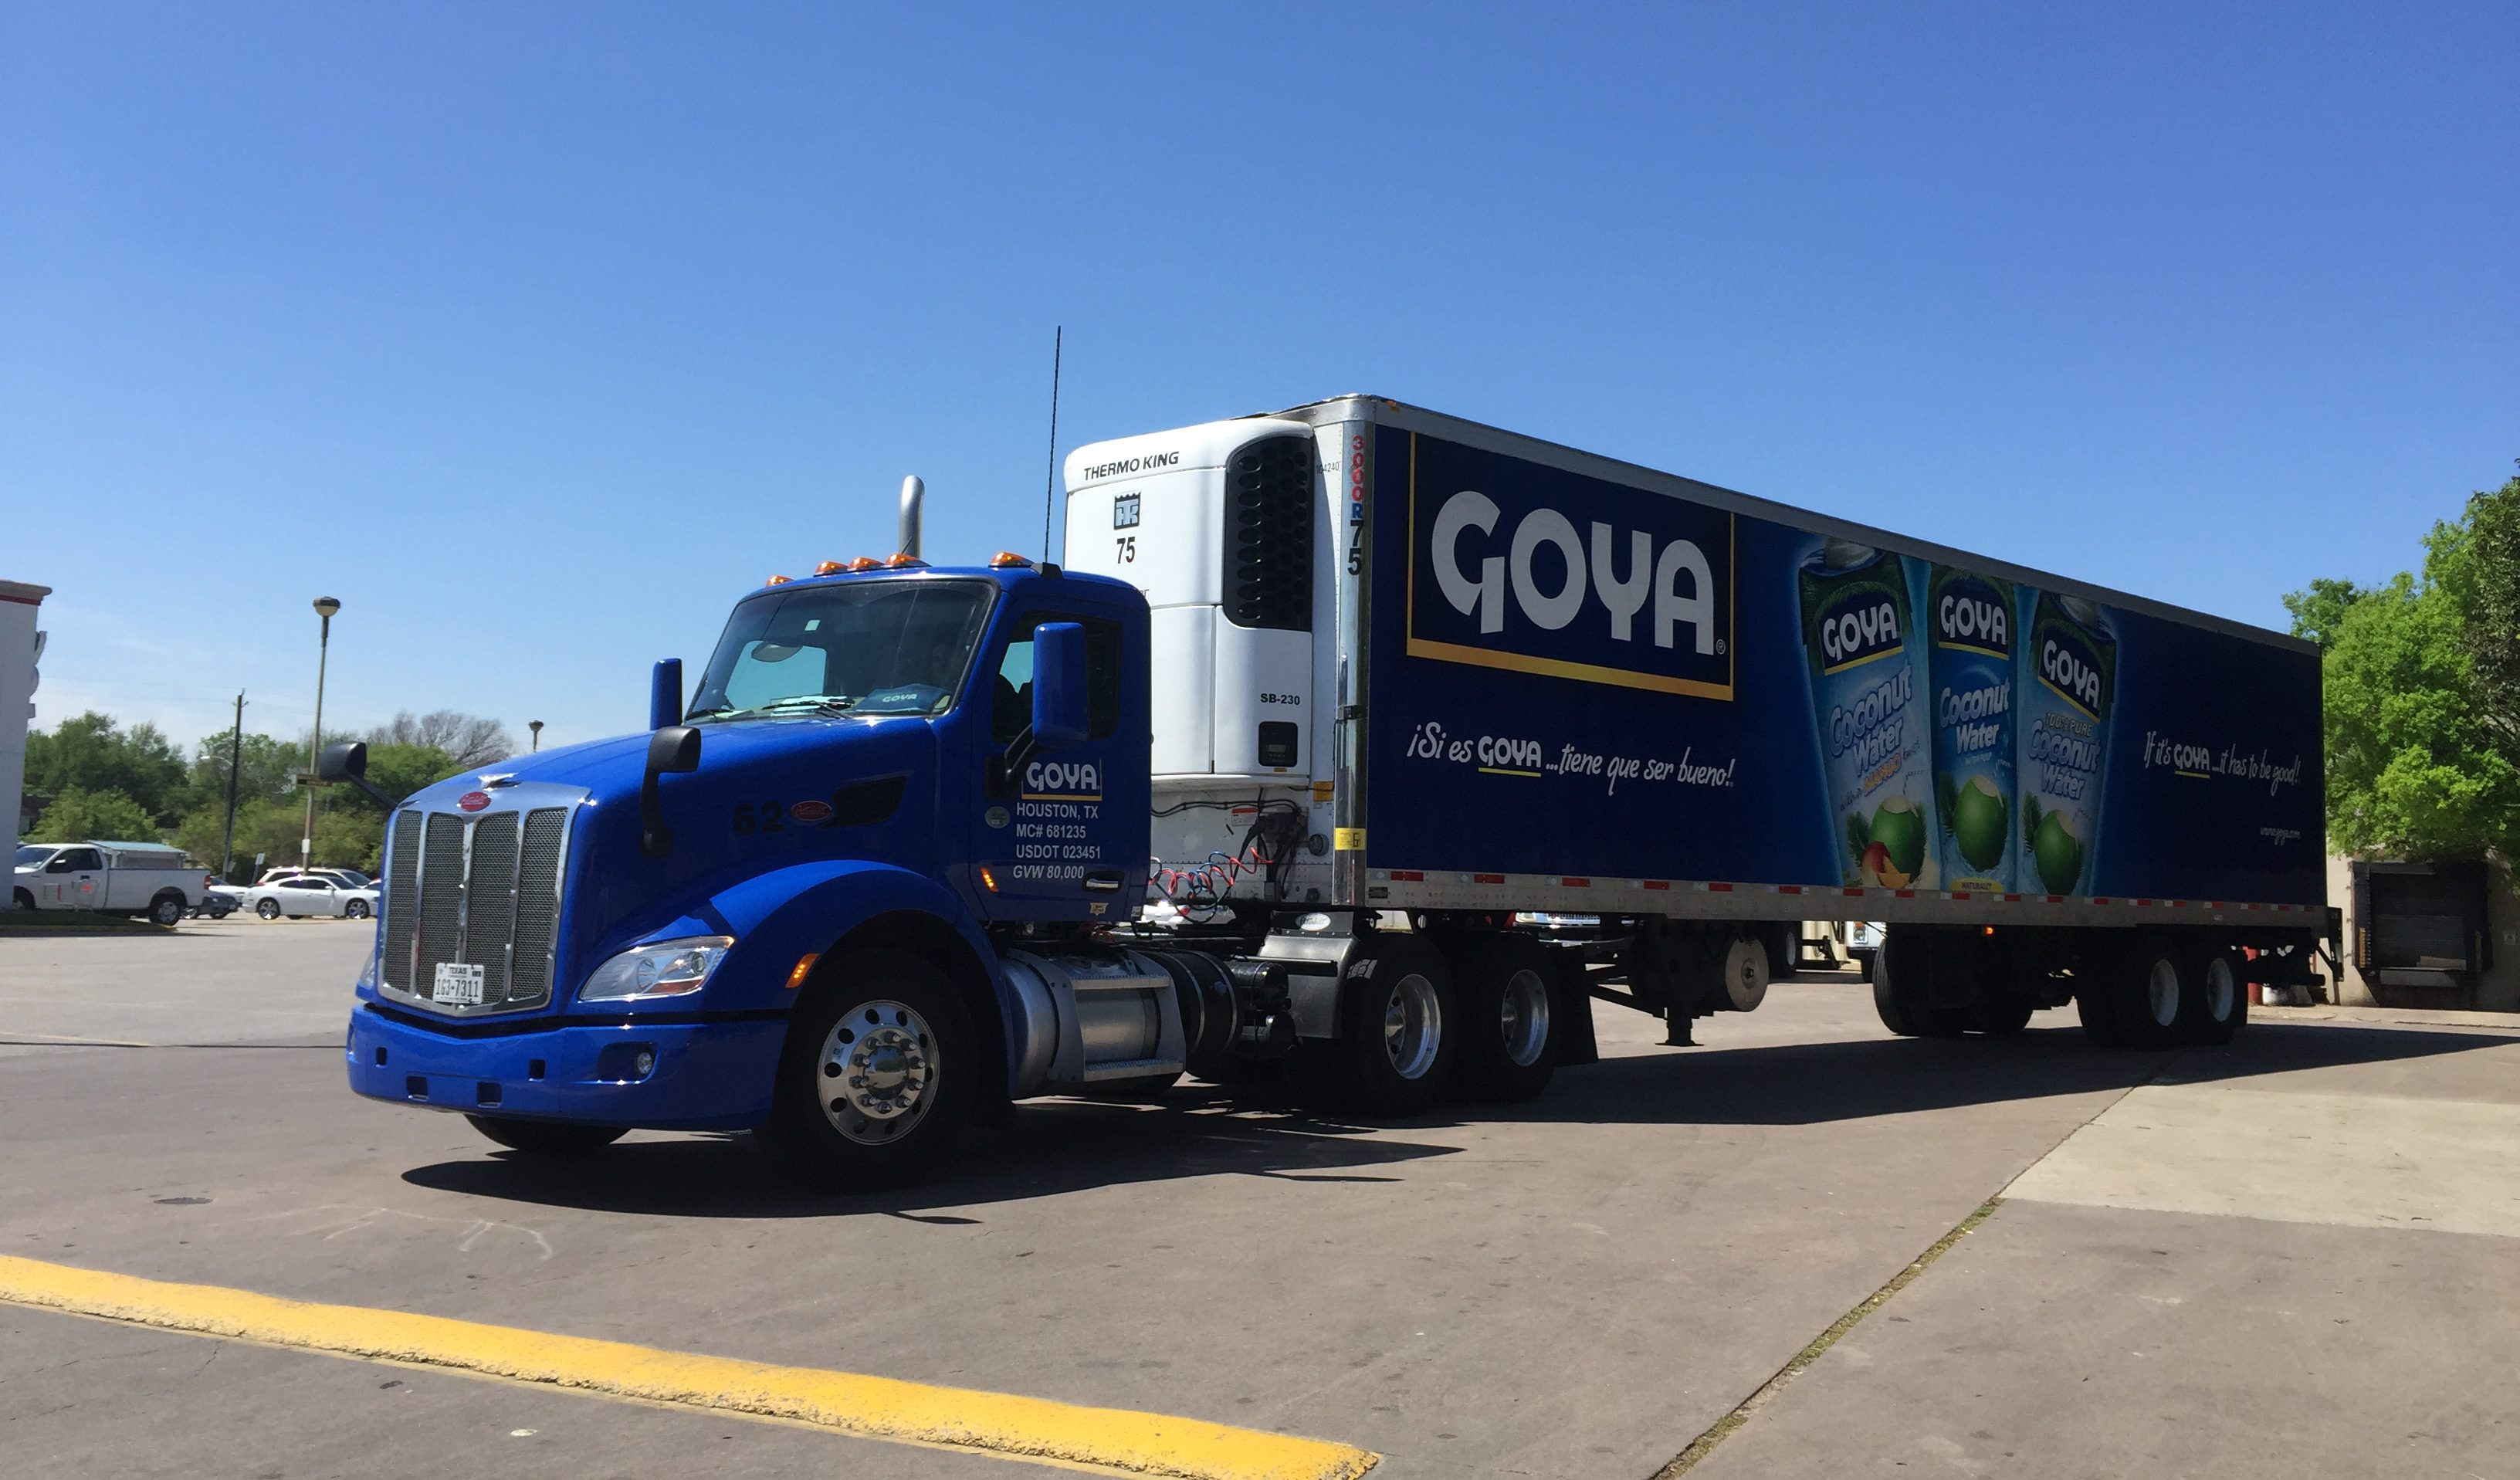 Calls for boycott of Goya Foods after CEO praises Trump during White House visit